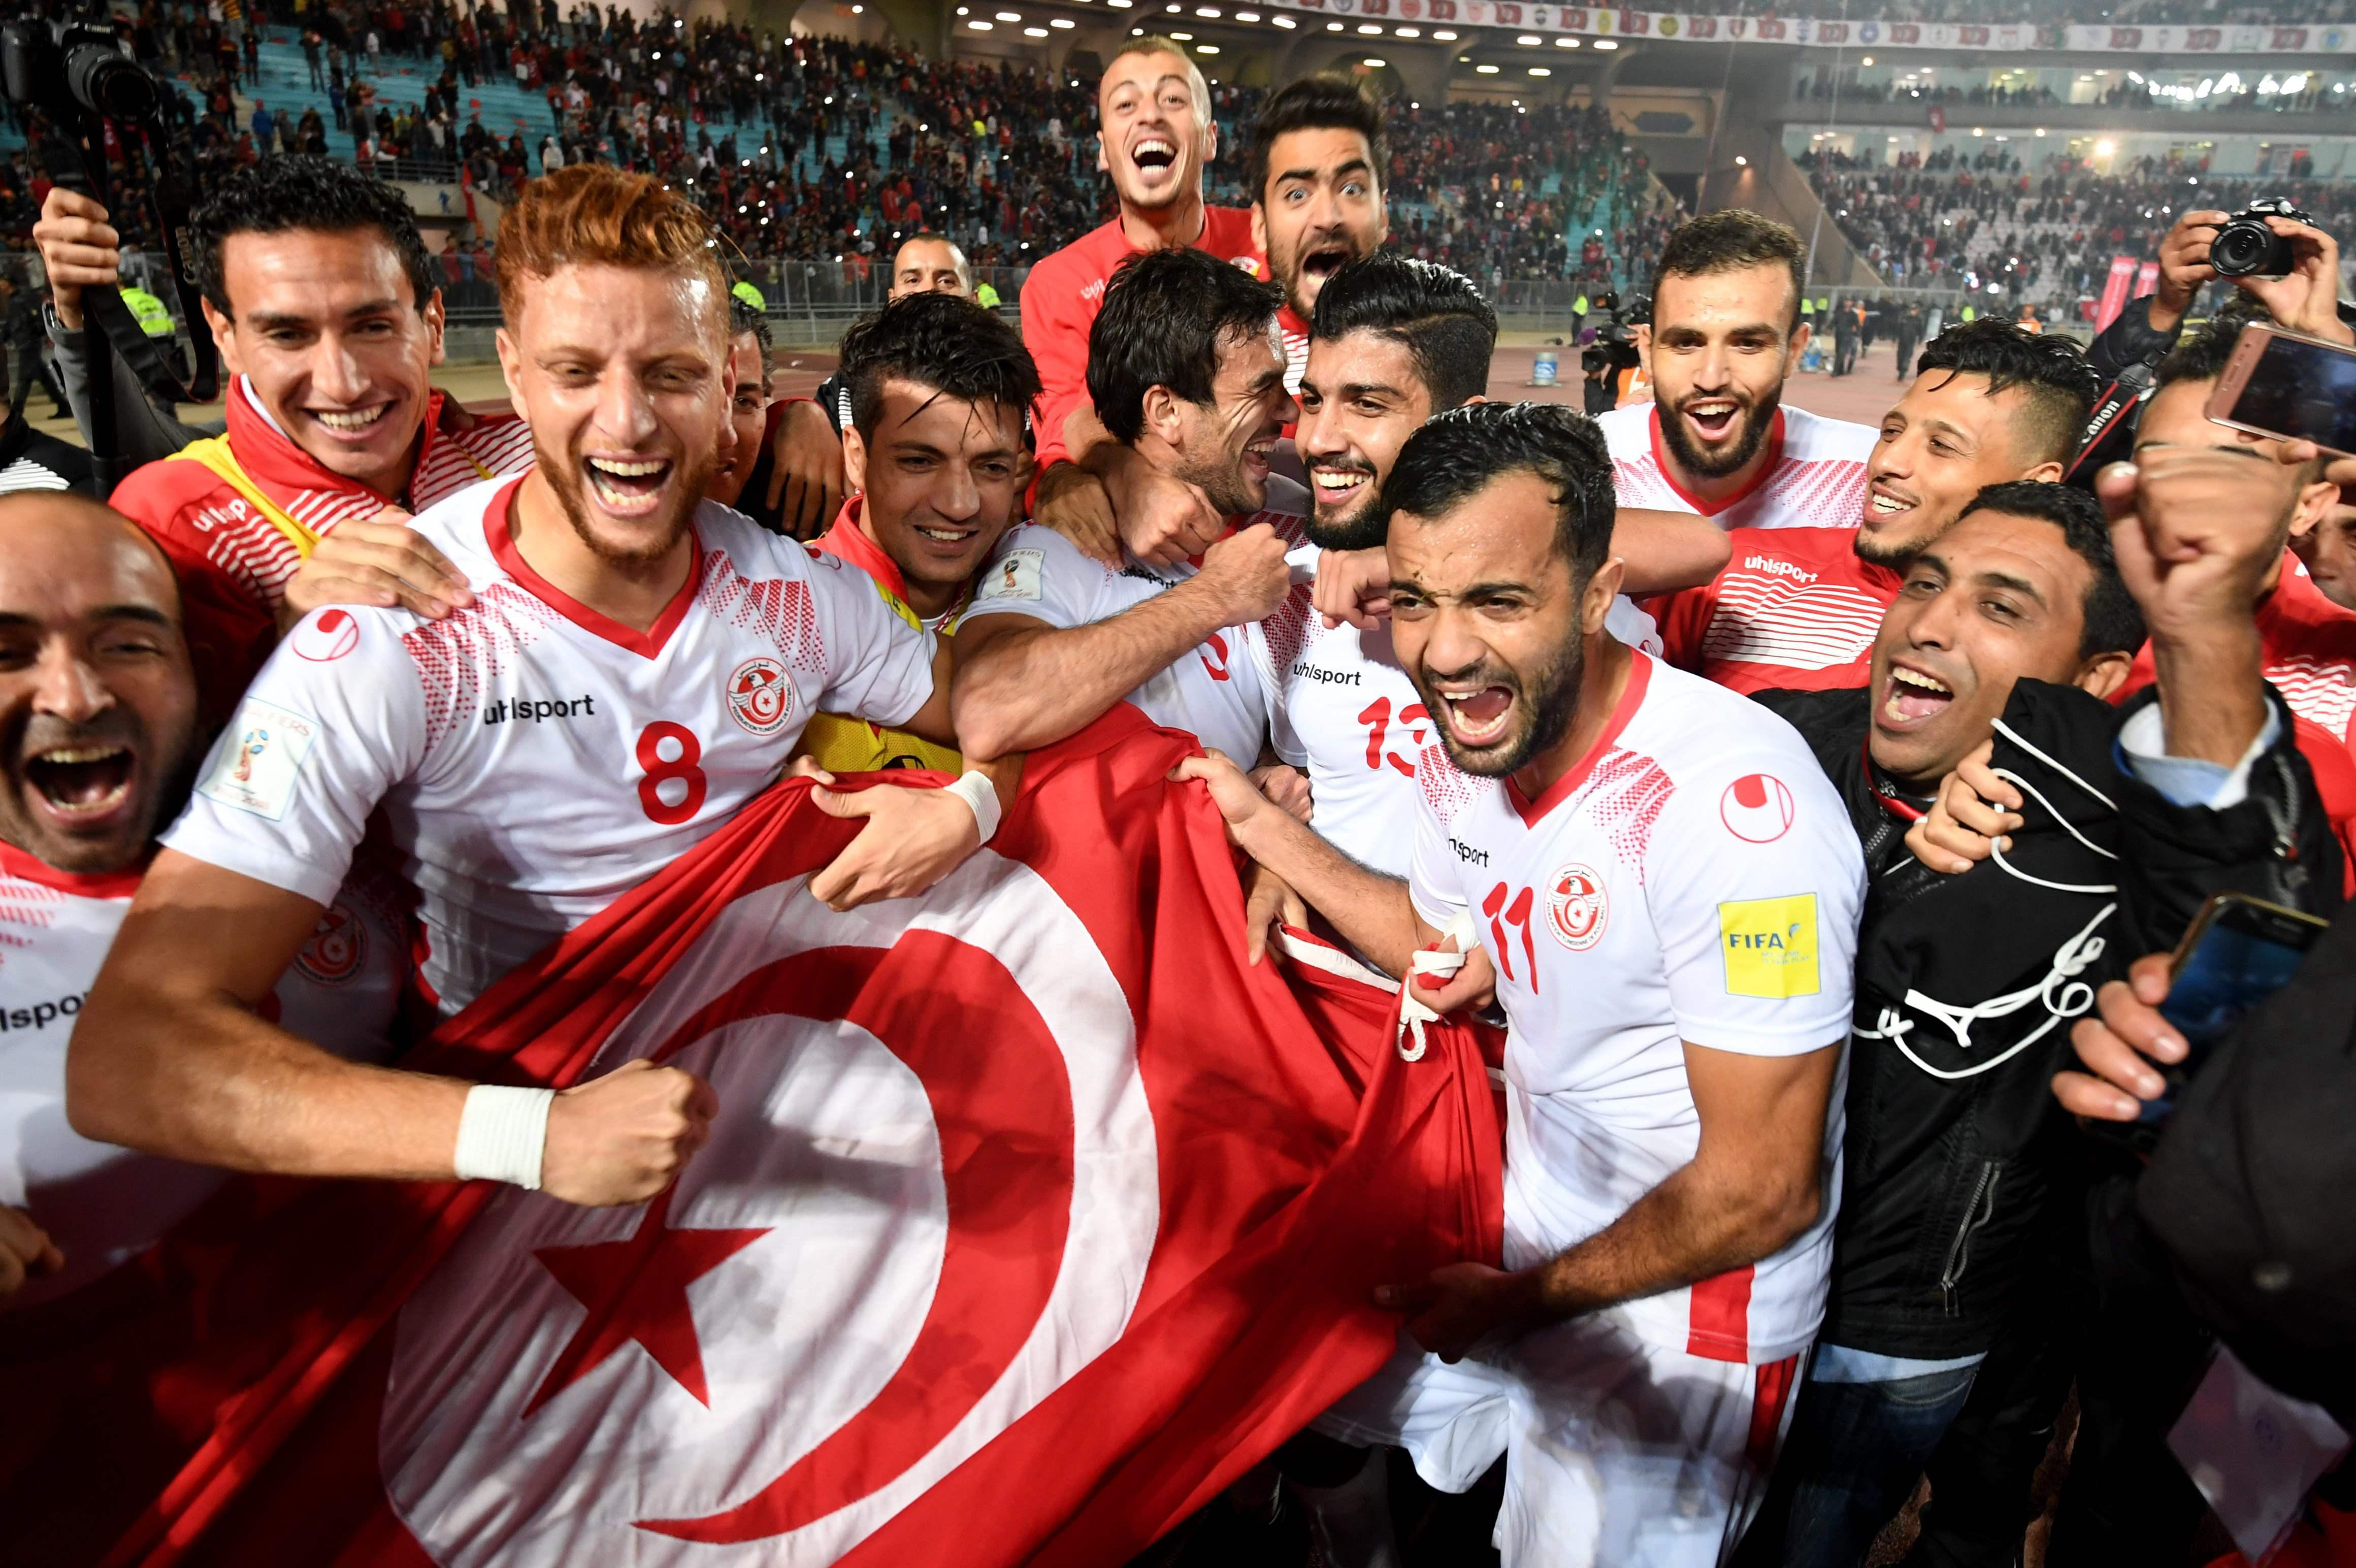 Tunisia will be there